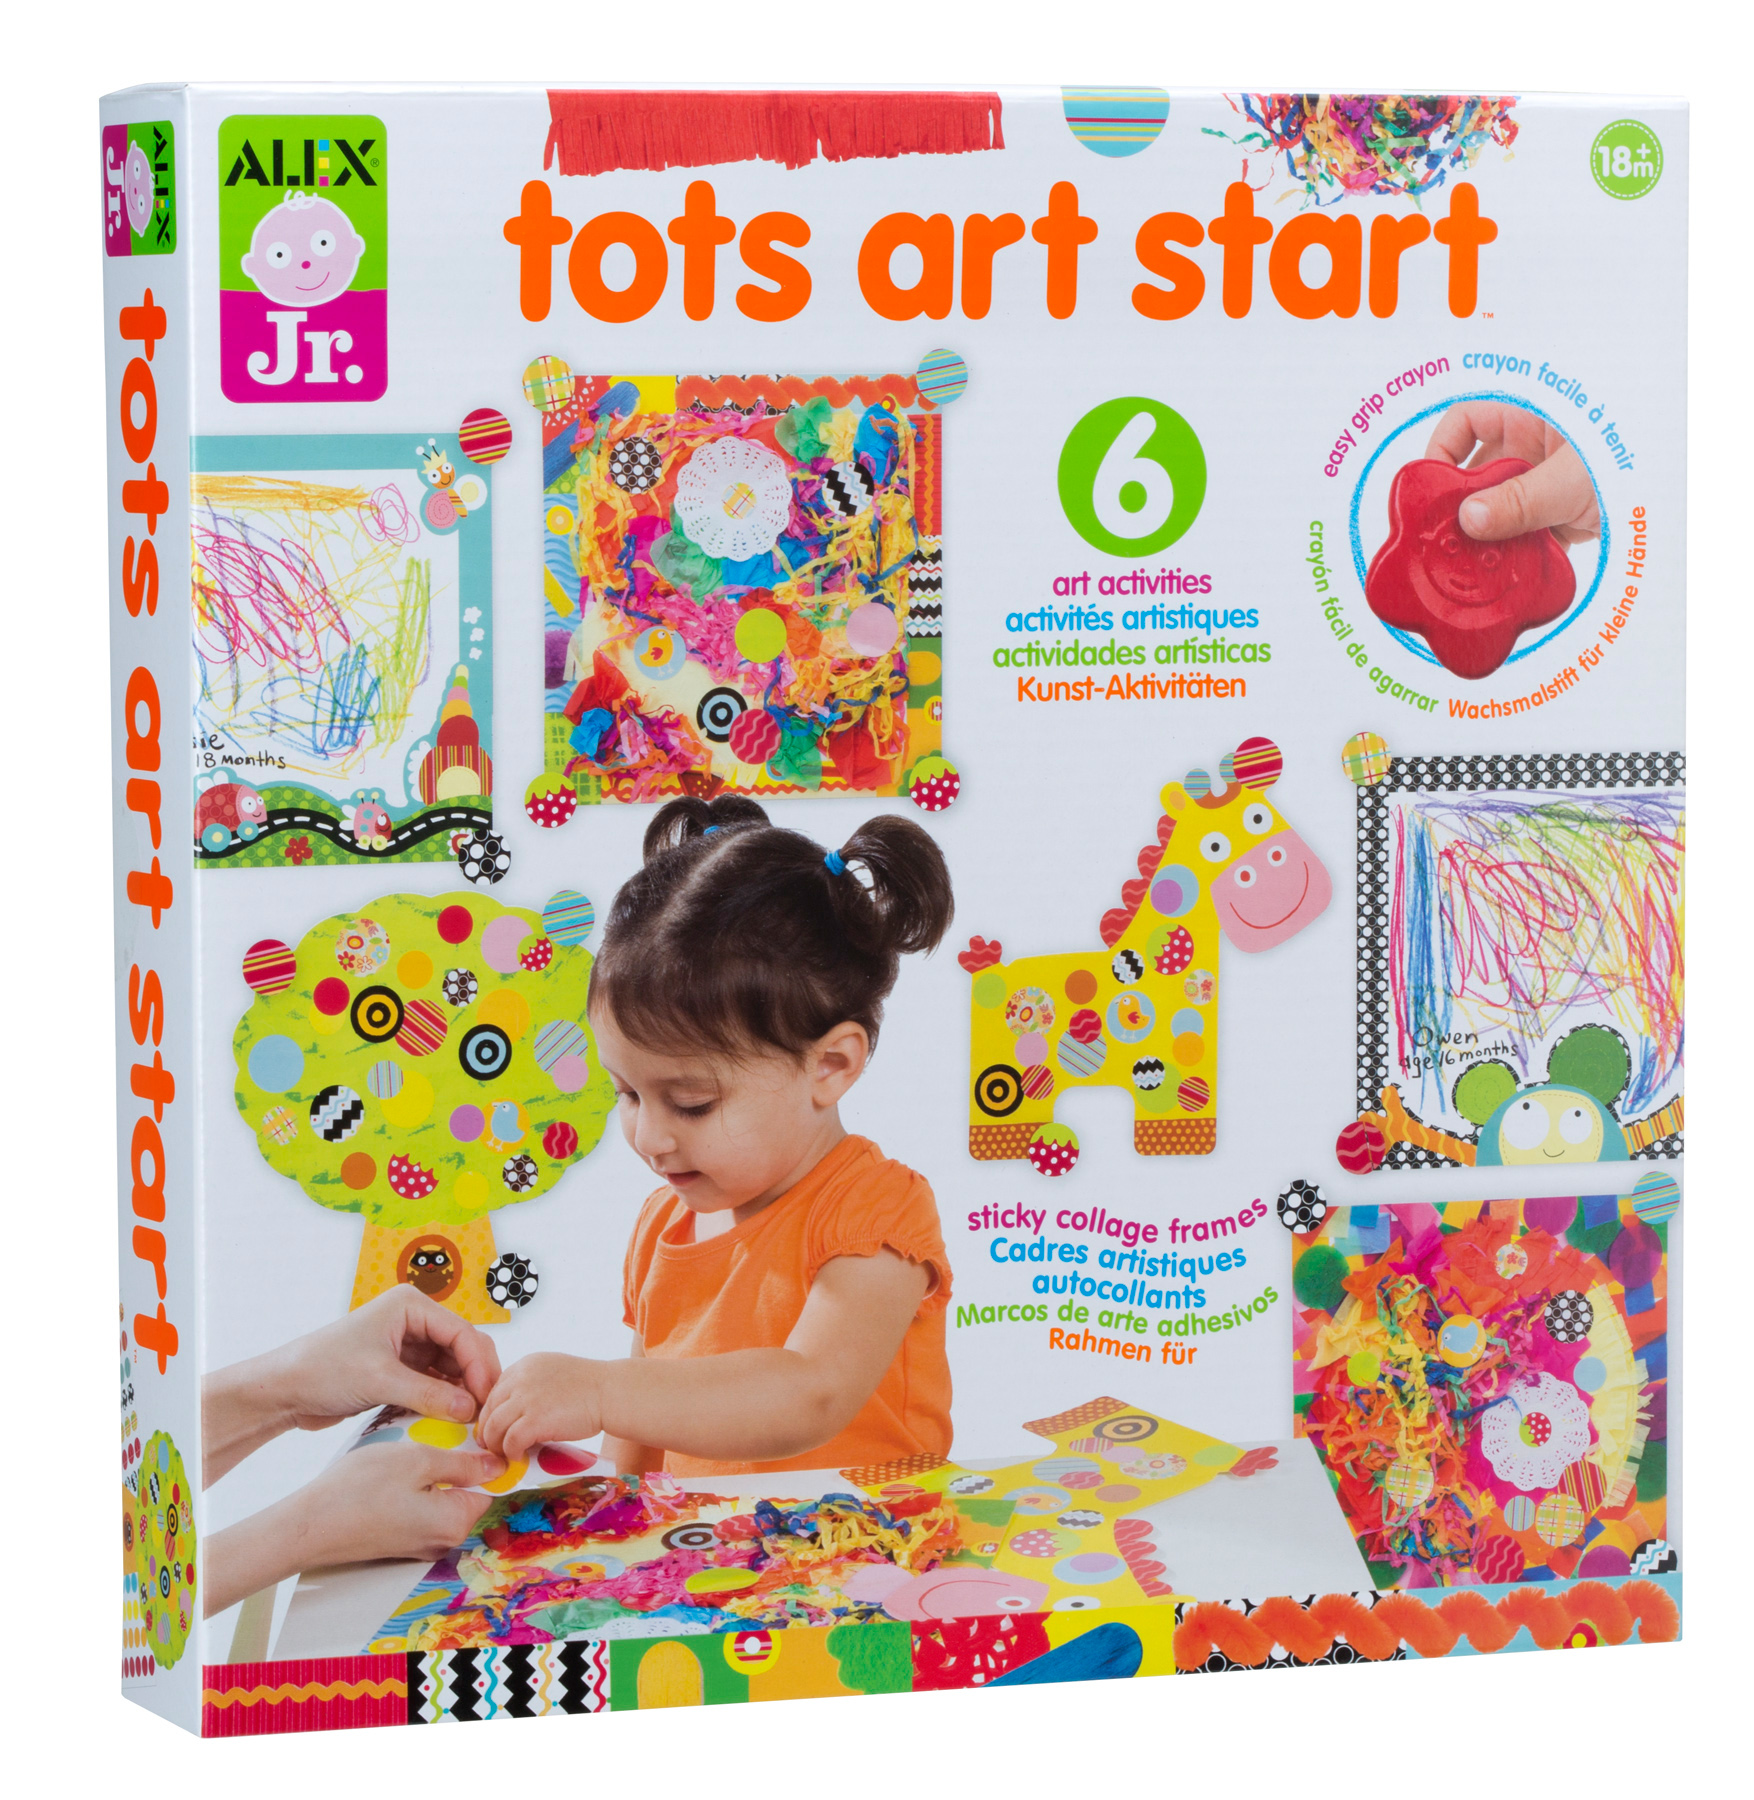 ALEX Jr. Tots Art Start by Alex Brands